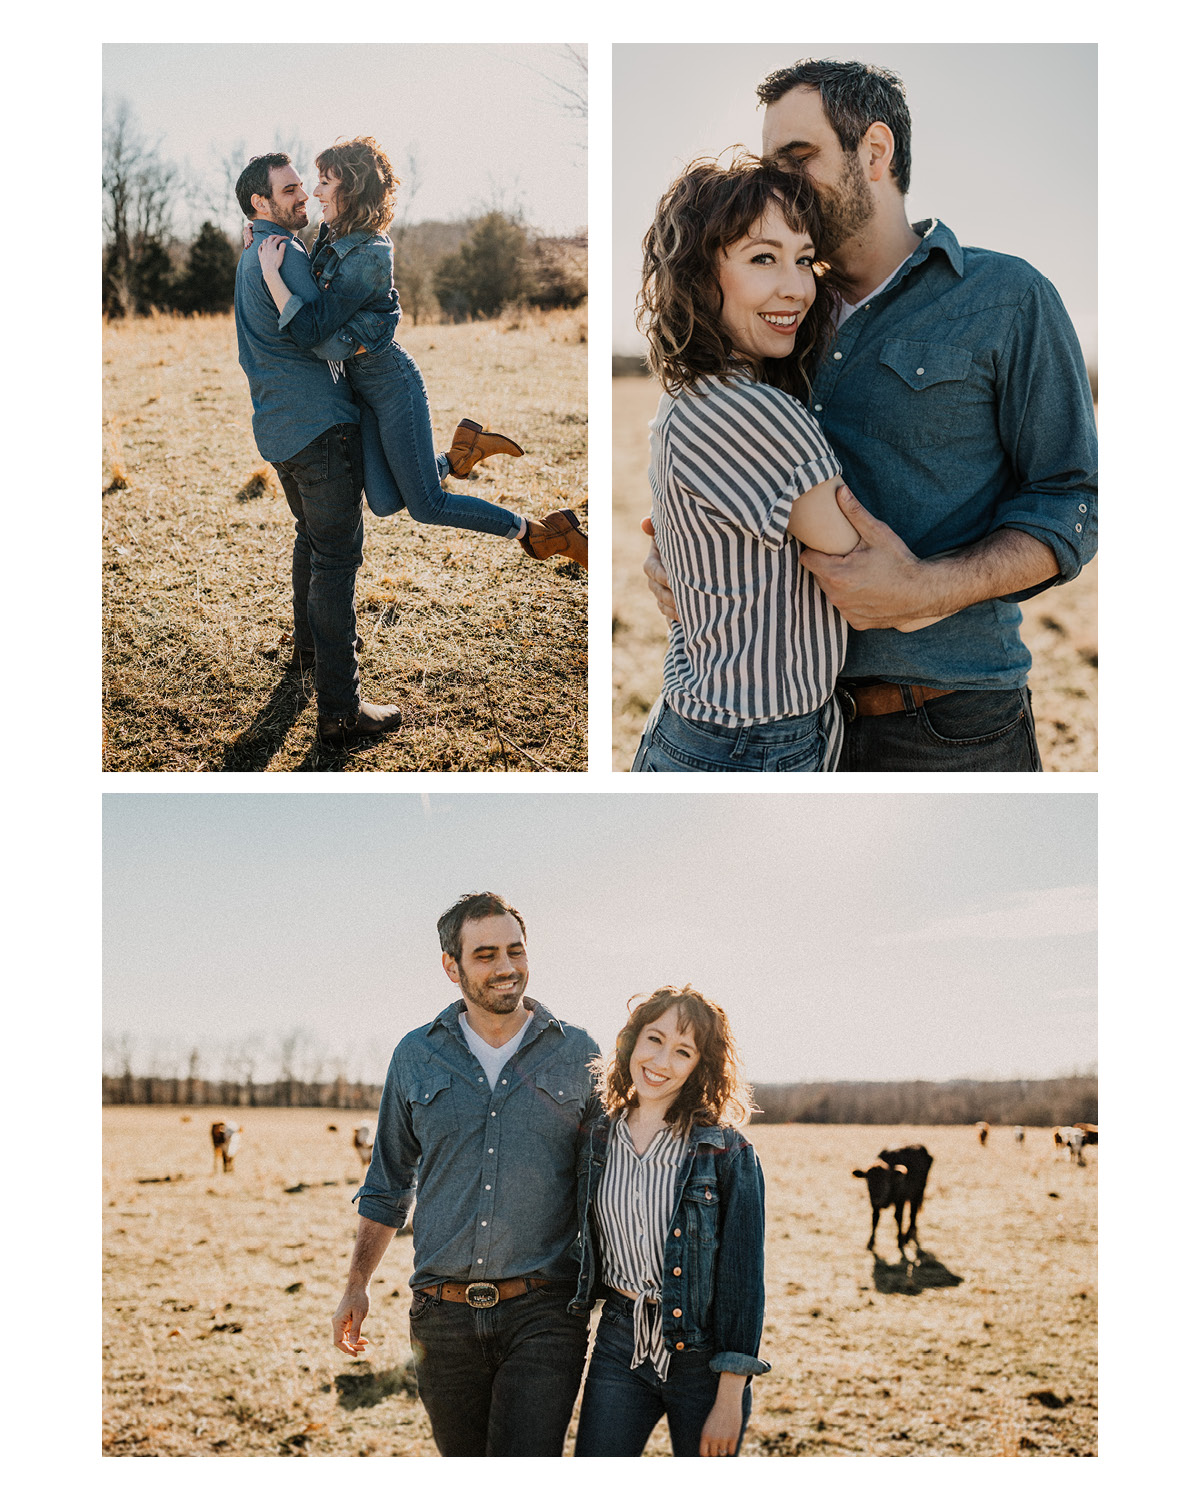 adventure-elopement-arkansas-photographer2.jpg